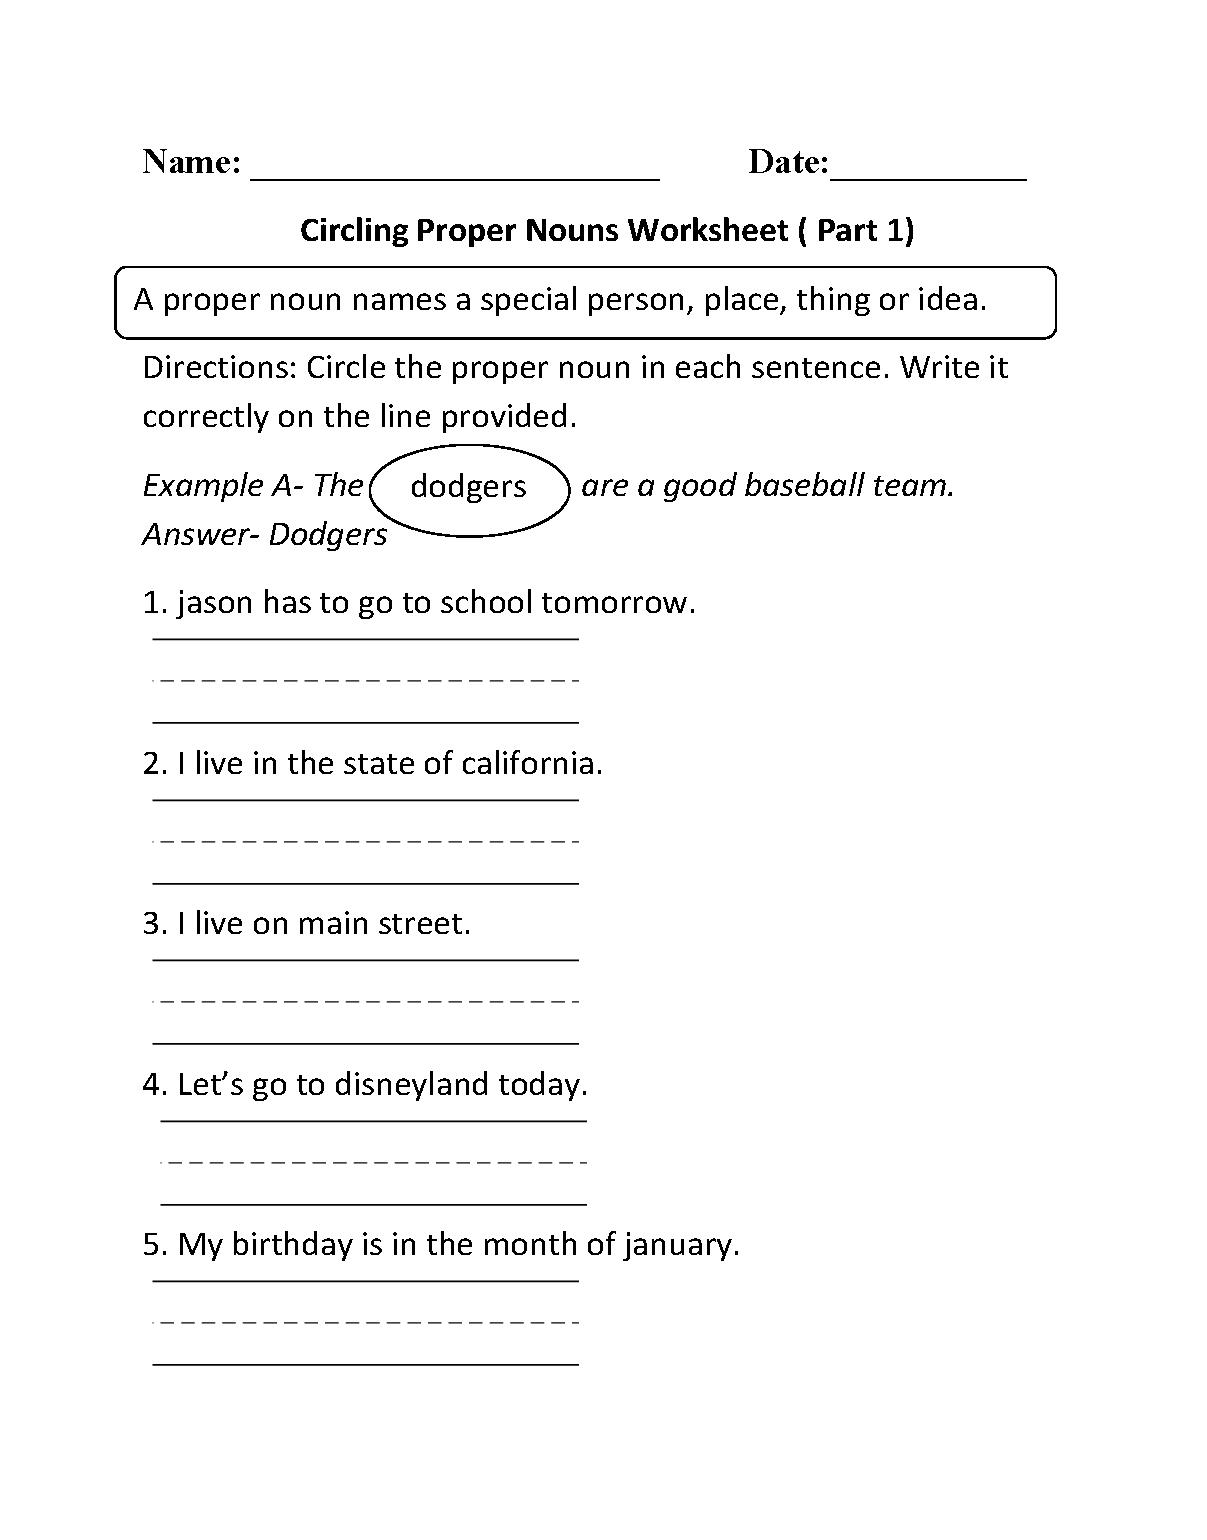 hight resolution of Proper and Common Nouns Worksheets   Circling Proper Nouns Worksheet Part 1